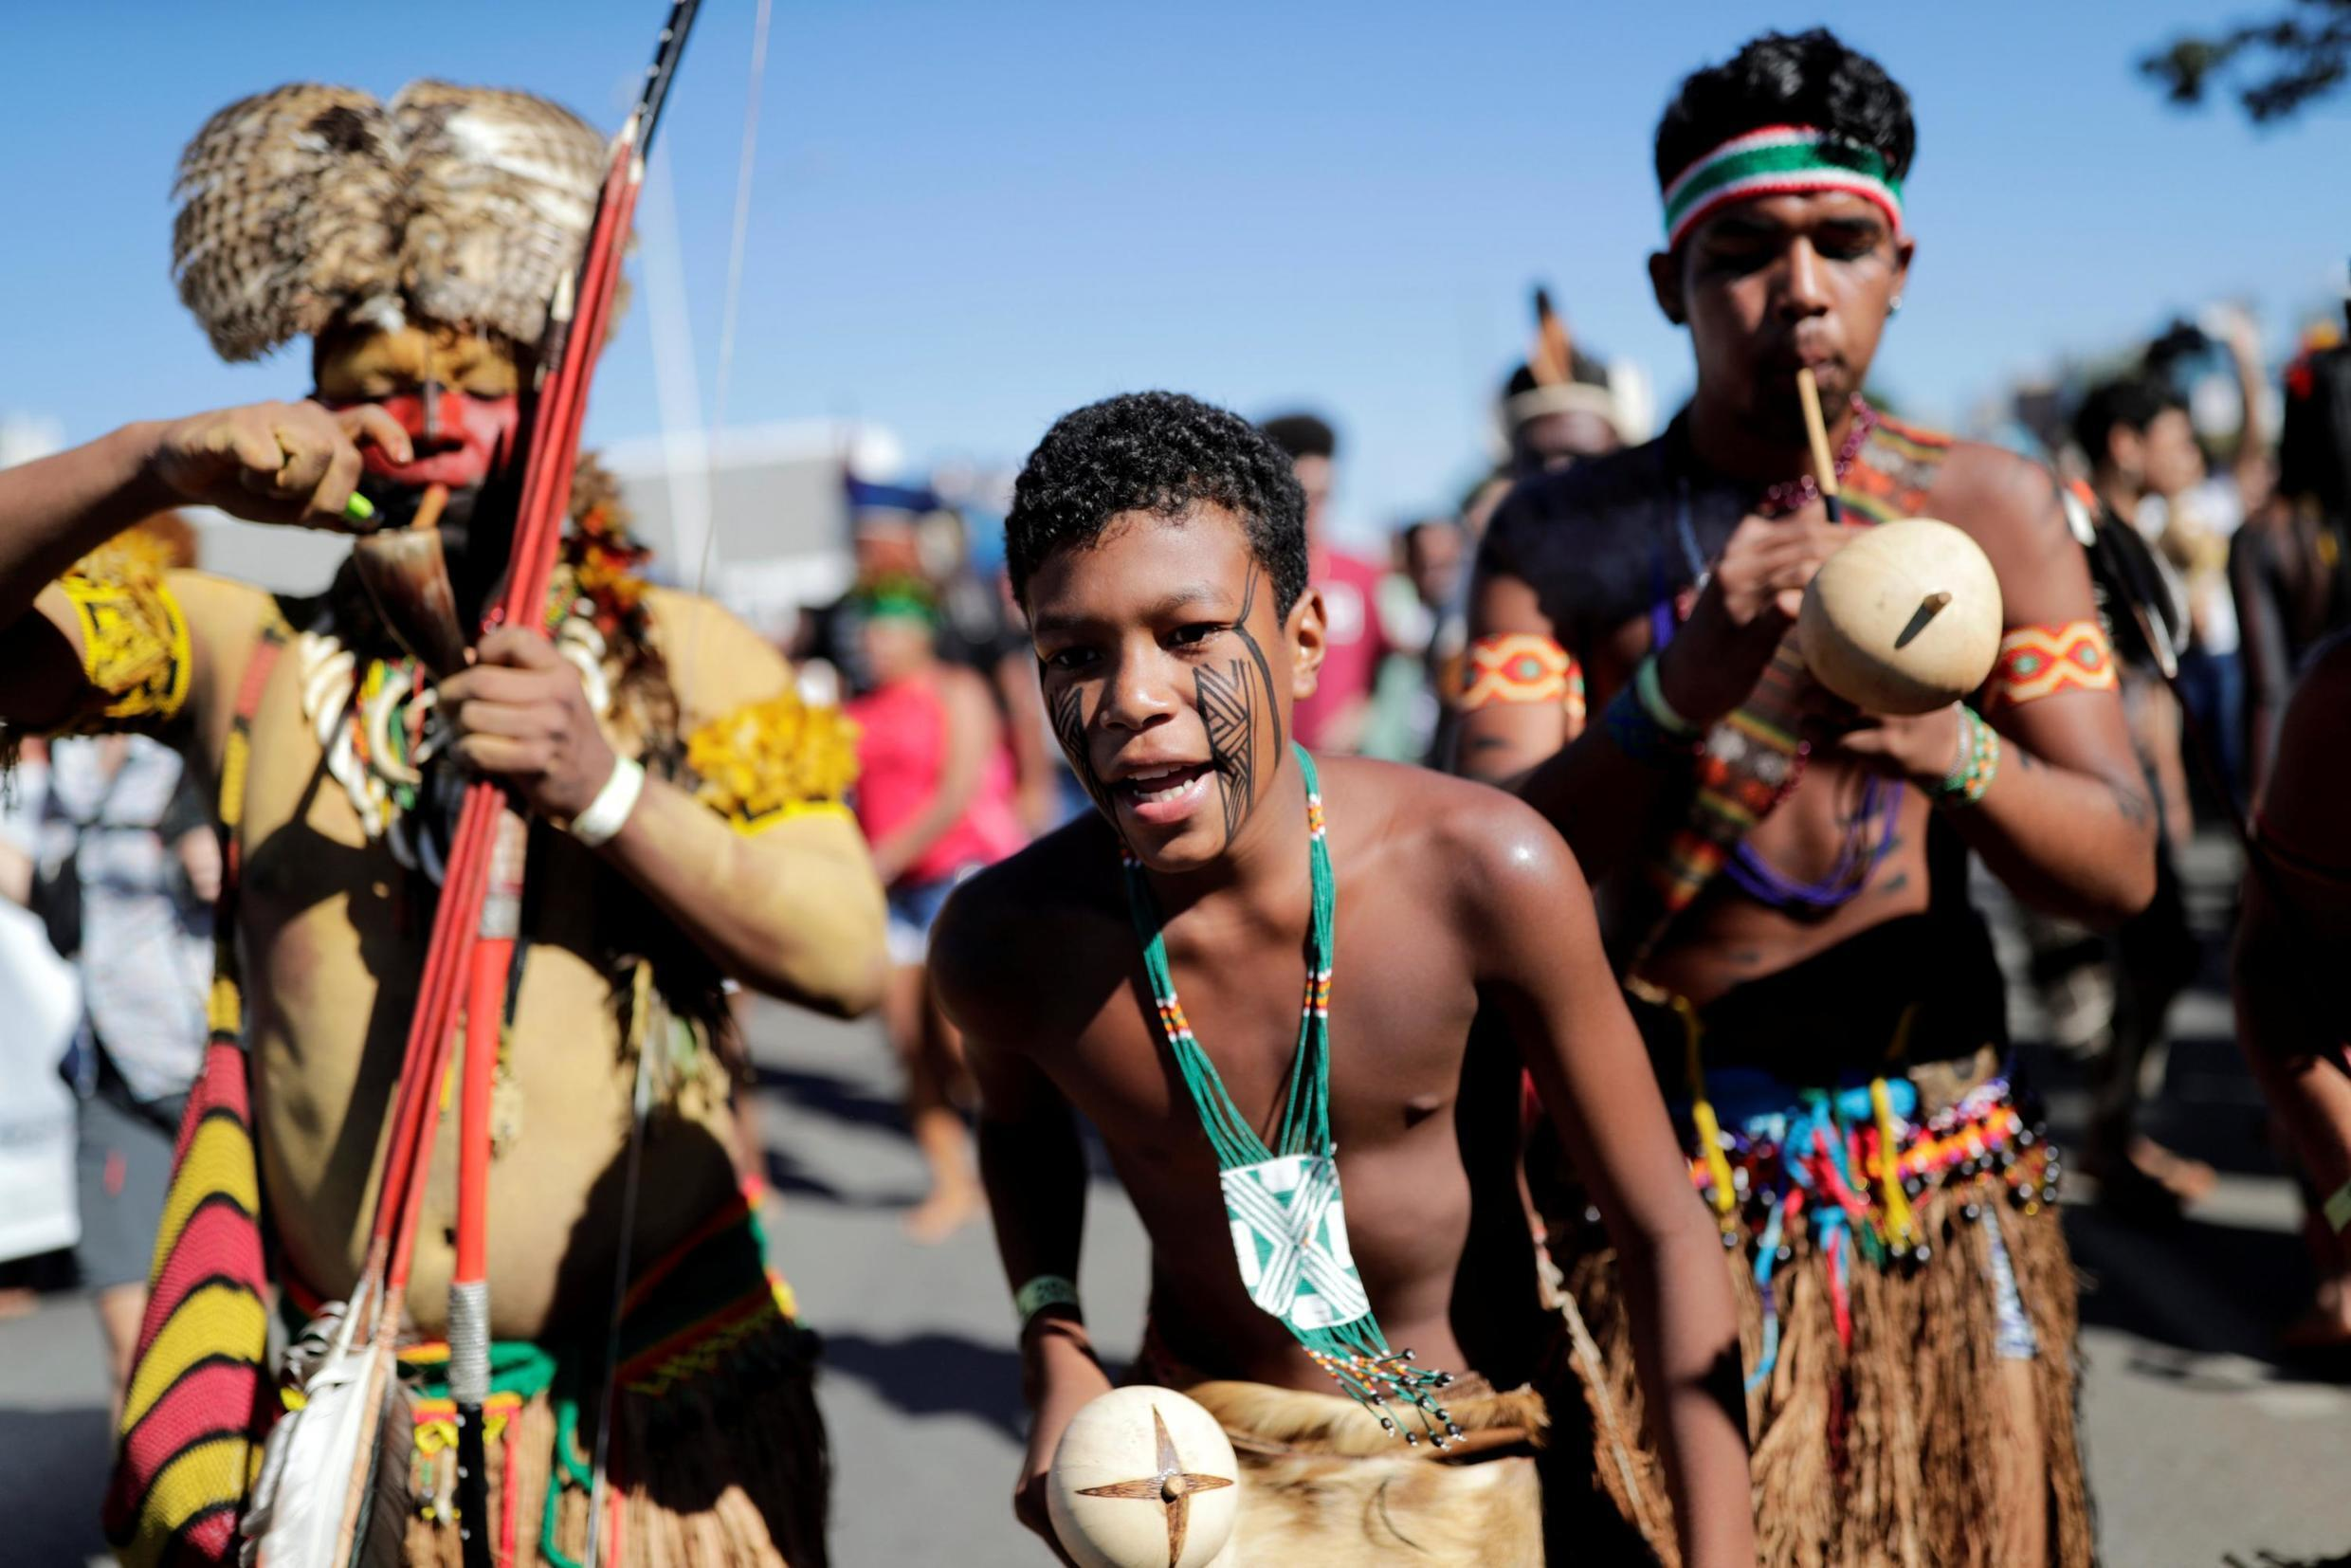 Native Brazilians take part in a protest to defend indigenous land and cultural rights that they say are threatened by the right-wing government.